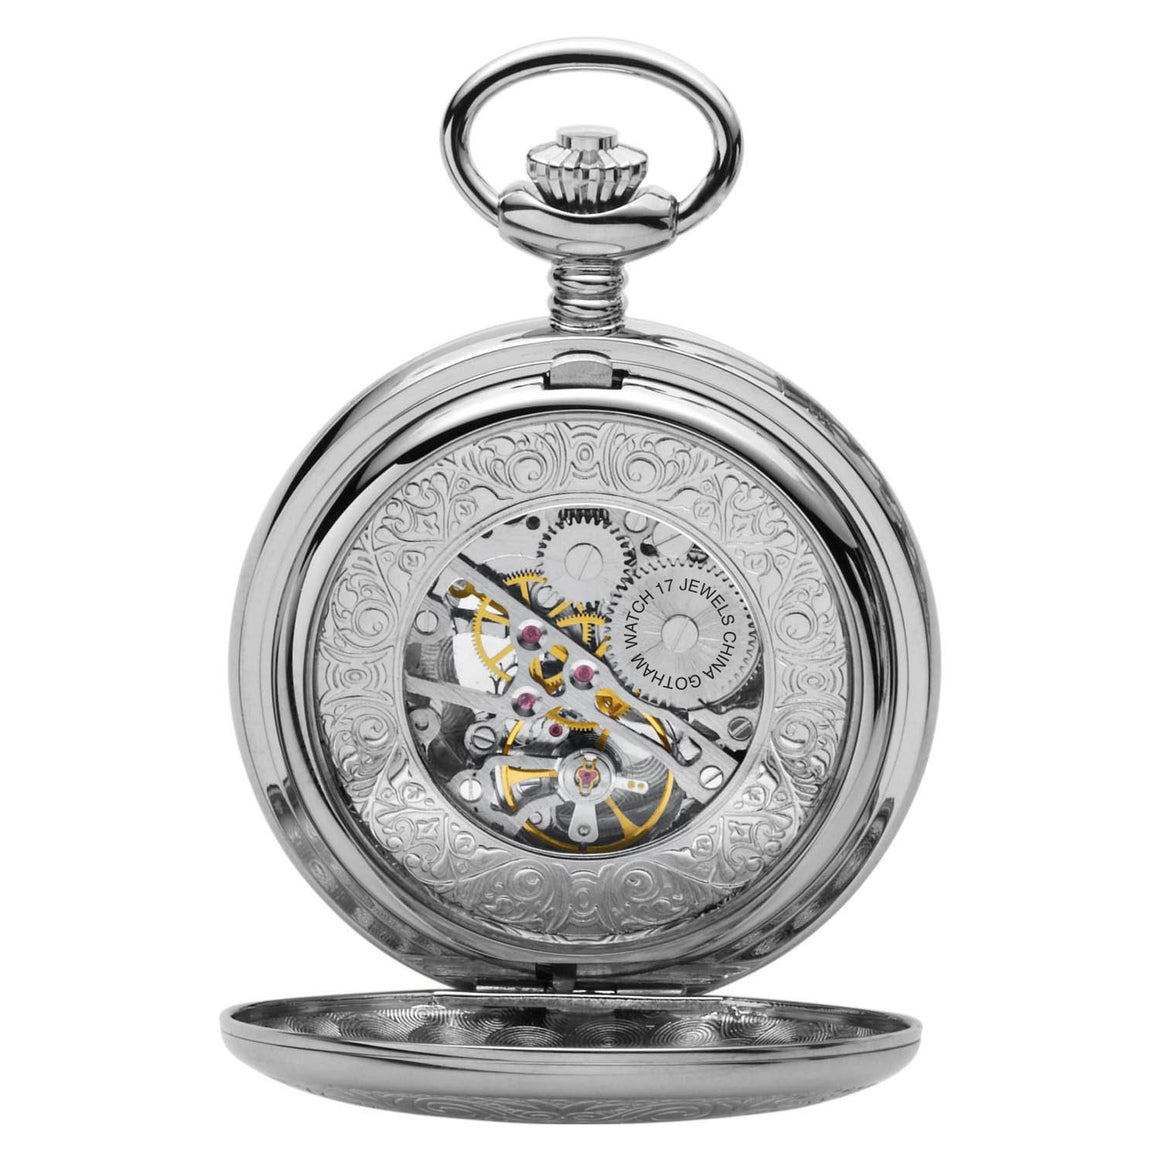 Gotham Men's Silver-Tone Mechanical Pocket Watch with Desktop Stand # GWC14040SB-ST - Gotham Watch